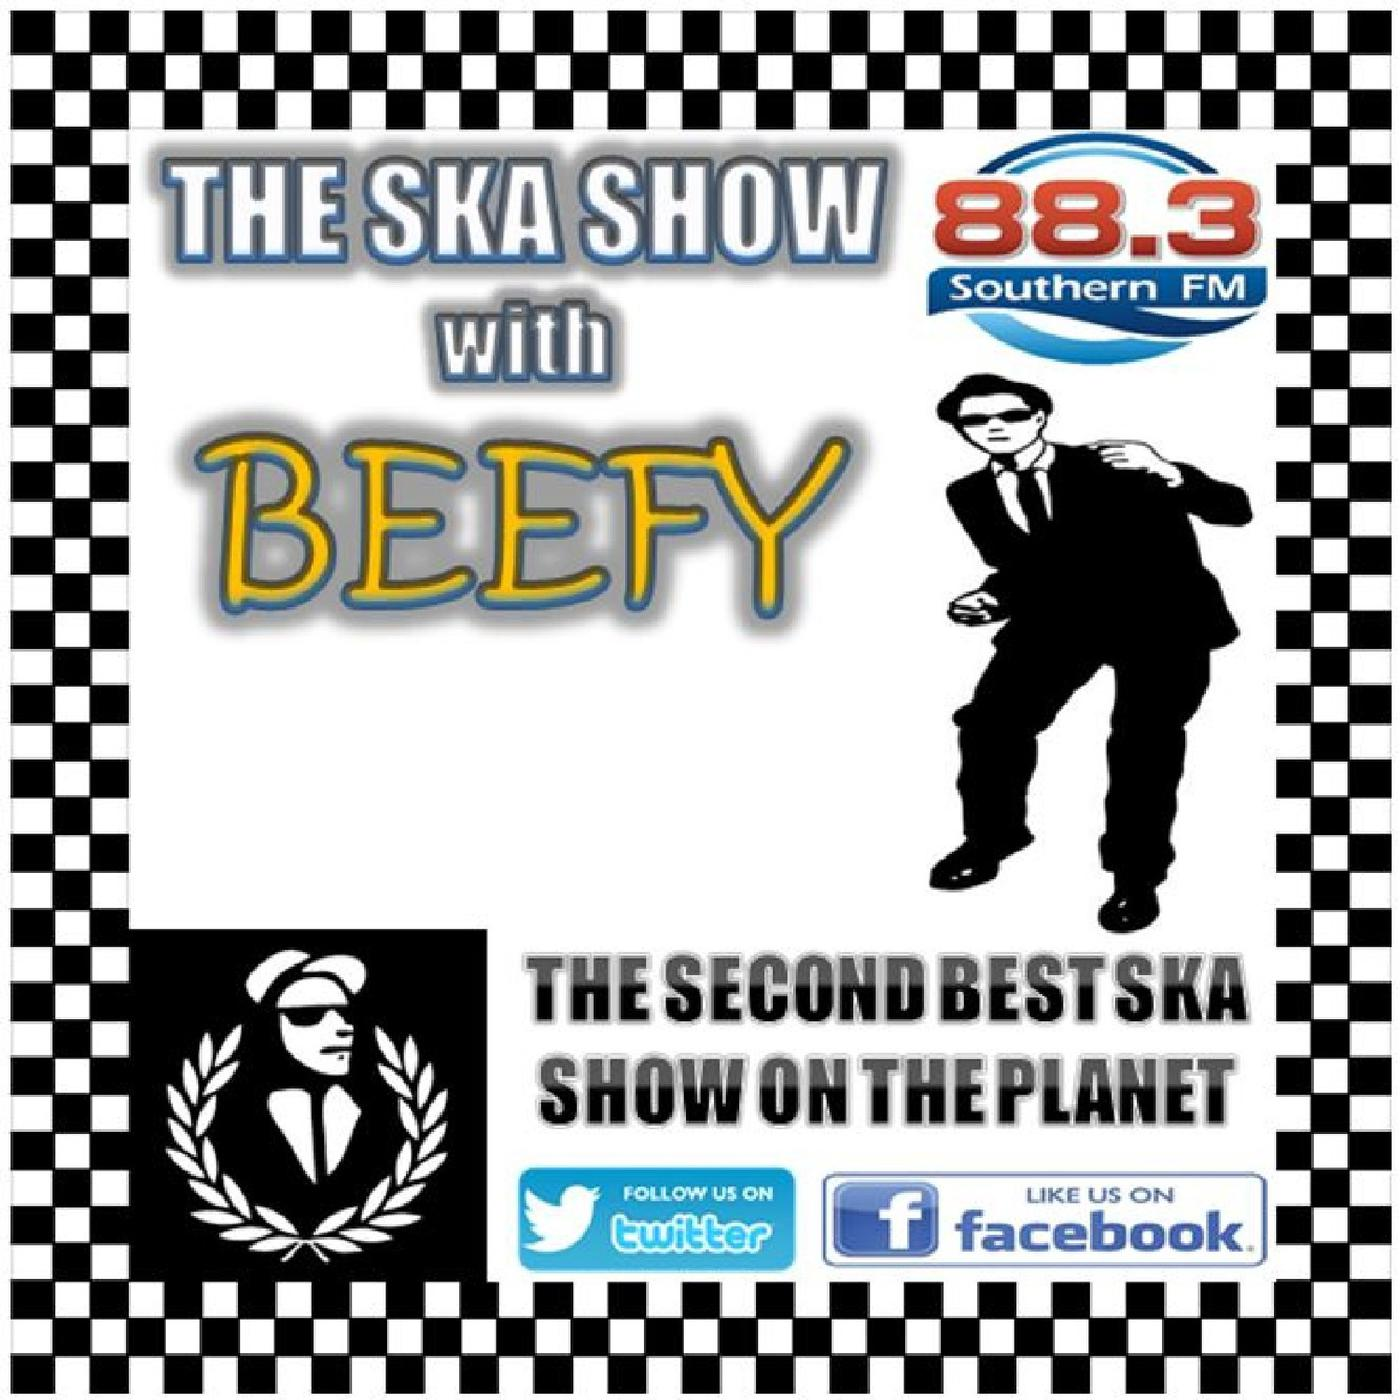 The Ska Show with Beefy, October 25th 2018